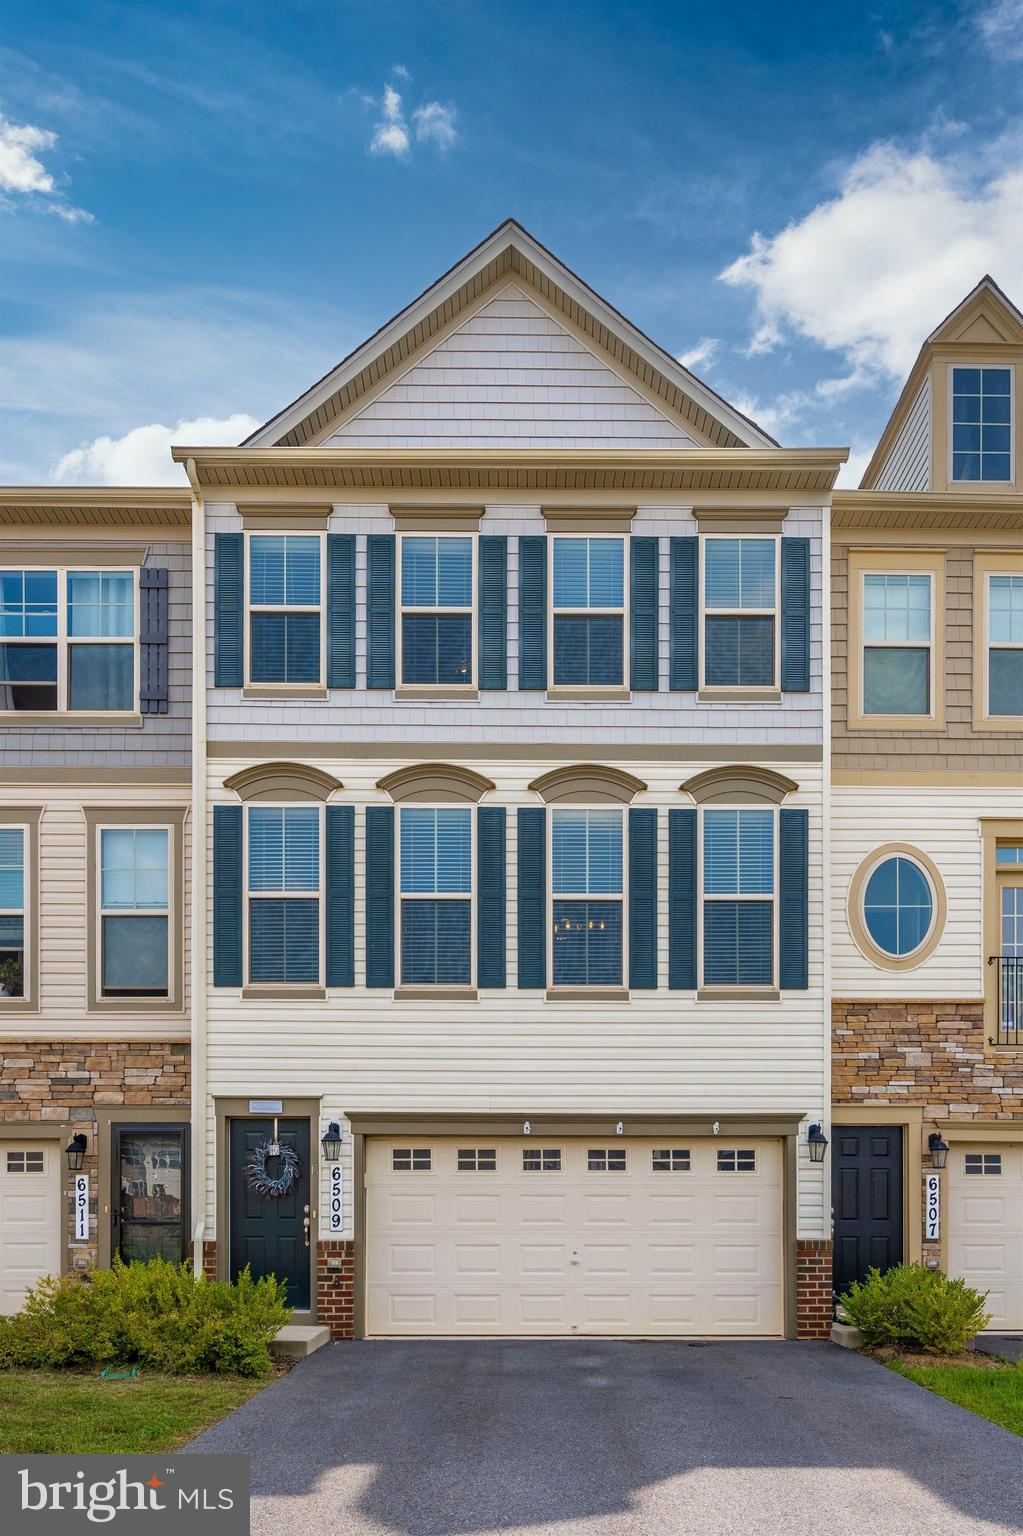 Gorgeous townhome in Manors at Ballenger Creek community. With three-level living, this home offers